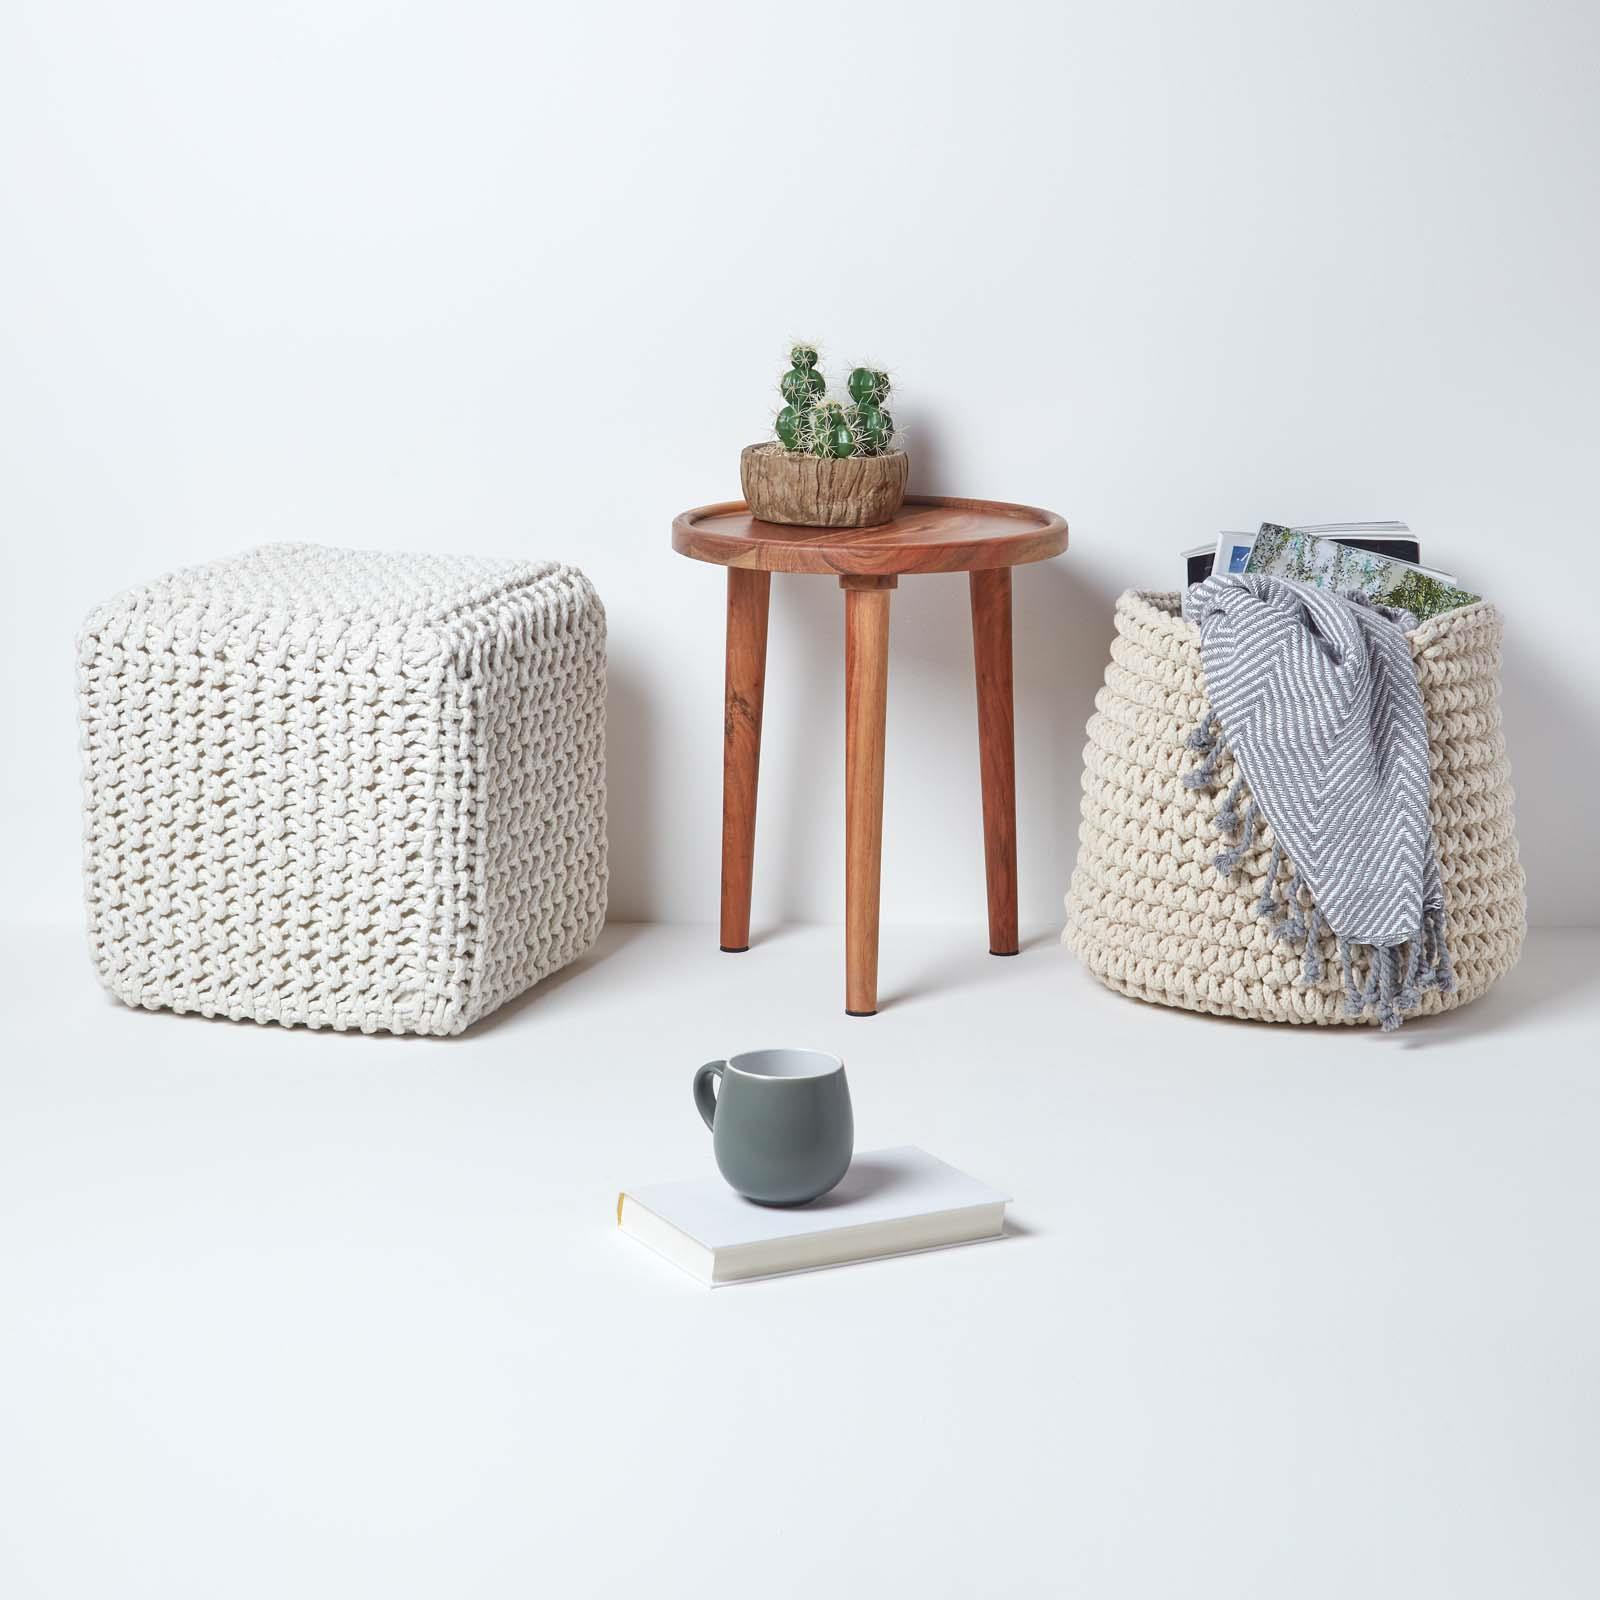 Hand-Knitted-100-Cotton-Pouffes-Round-Sphere-Or-Cube-Square-Chunky-Footstools thumbnail 97